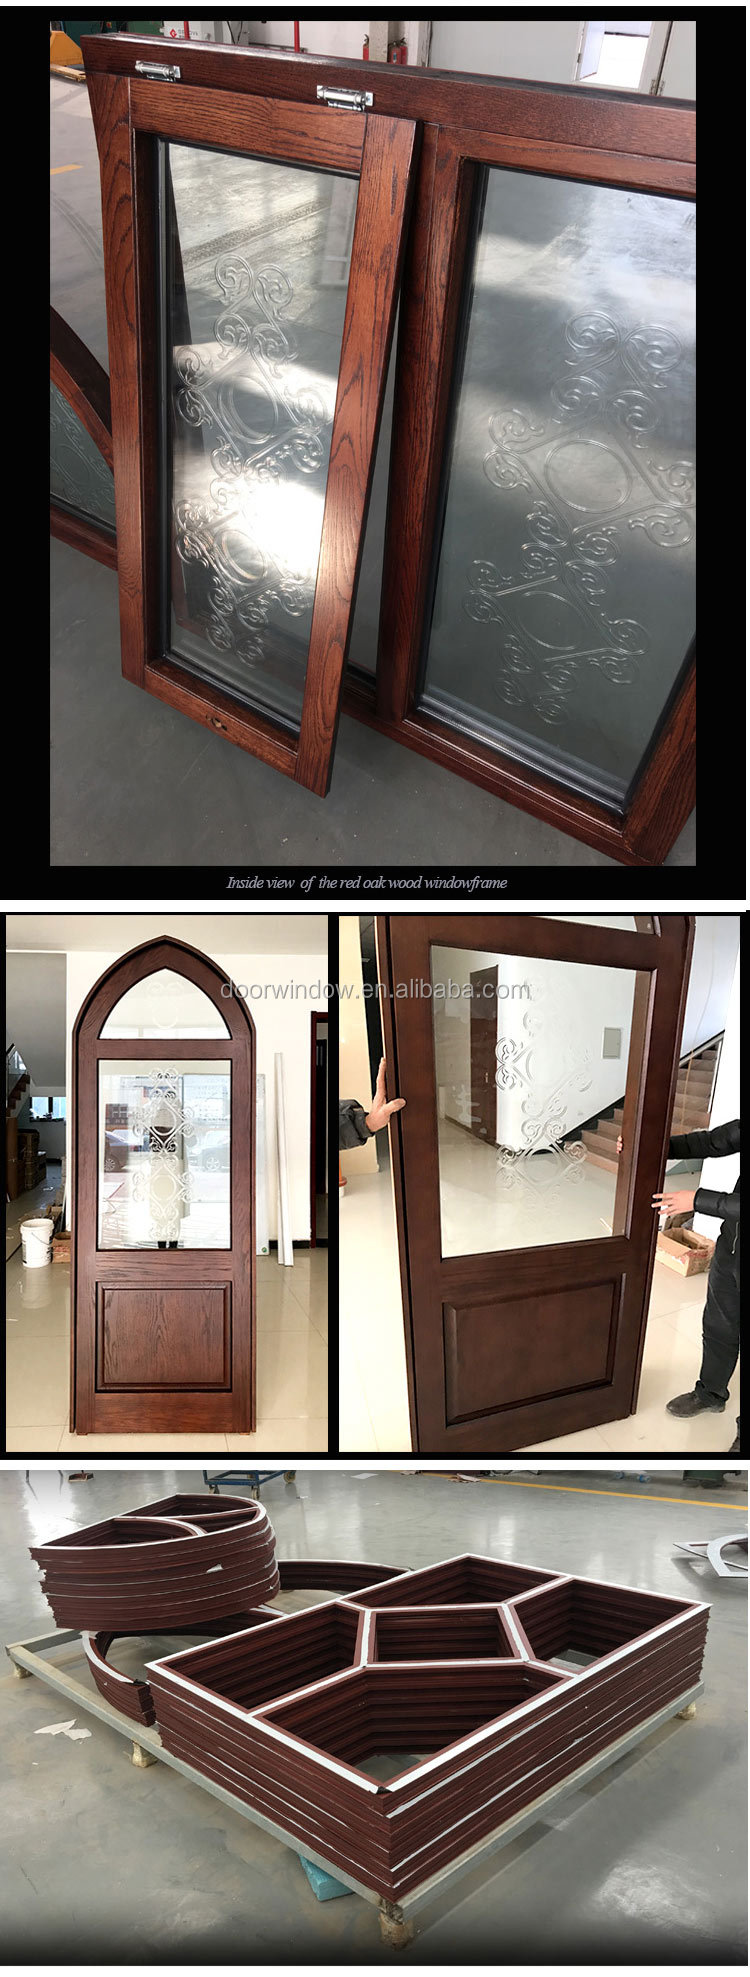 Wood arched window frame round wooden windows